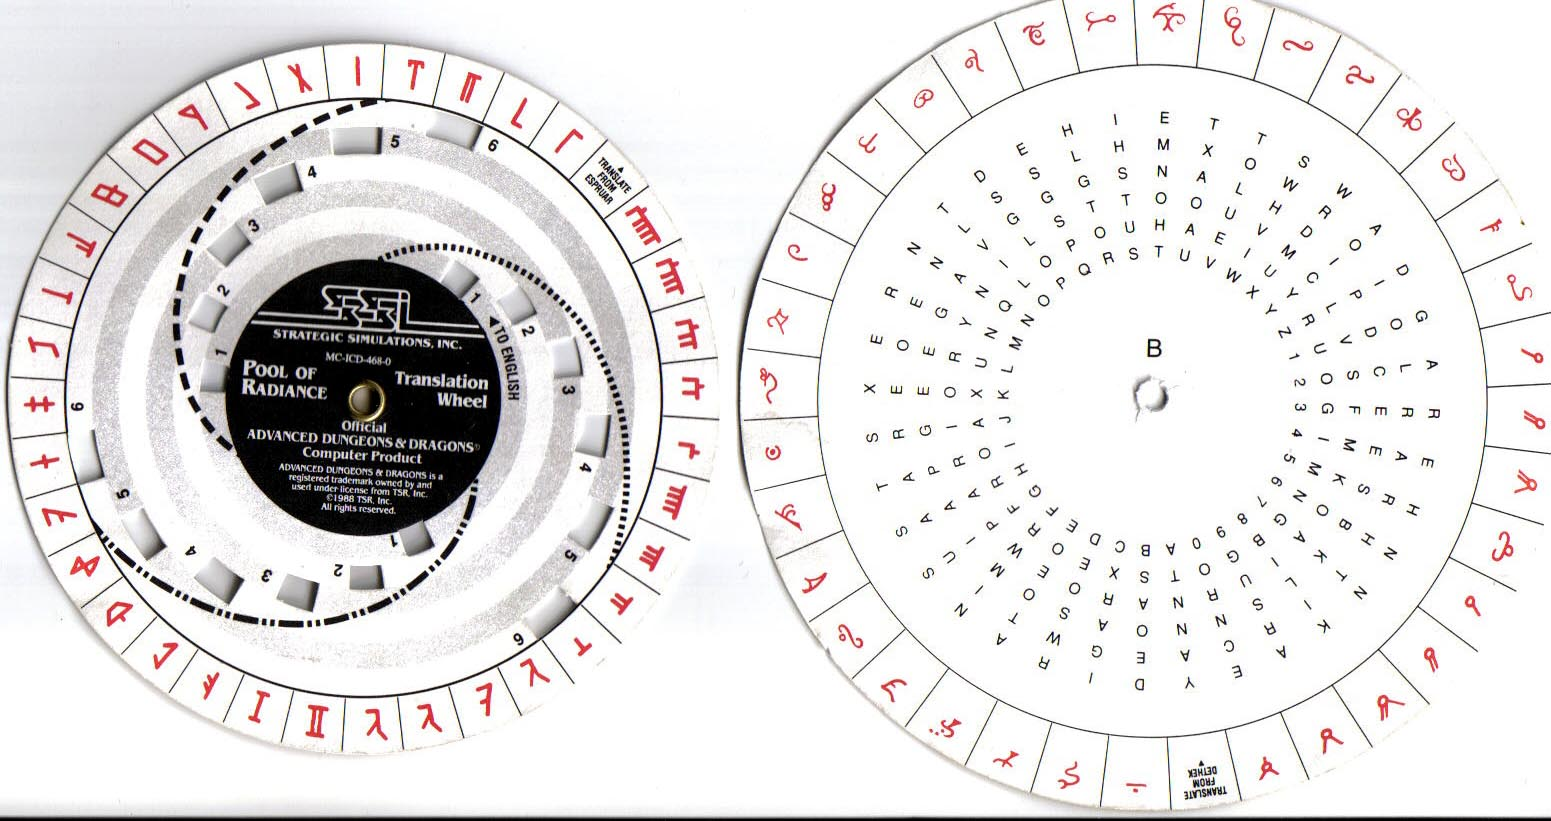 image regarding Printable Decoder Wheel named Code Wheels Sheets Archives - Site 5 of 6 - C64 Replica